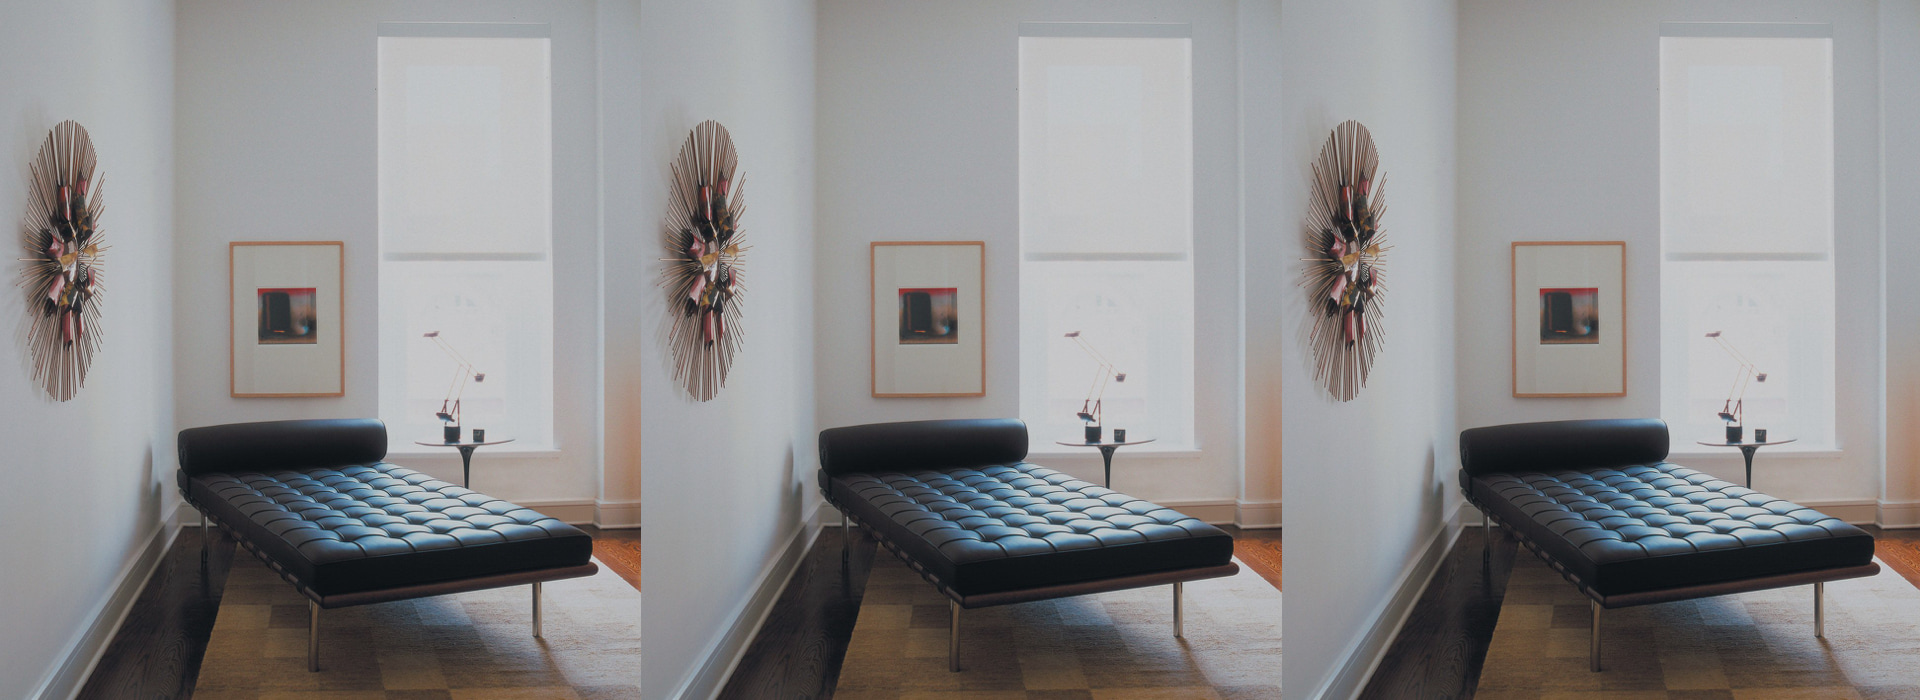 Everything u need to know about one of the 20th century's best-known designs: the Barcelona Day Bed.